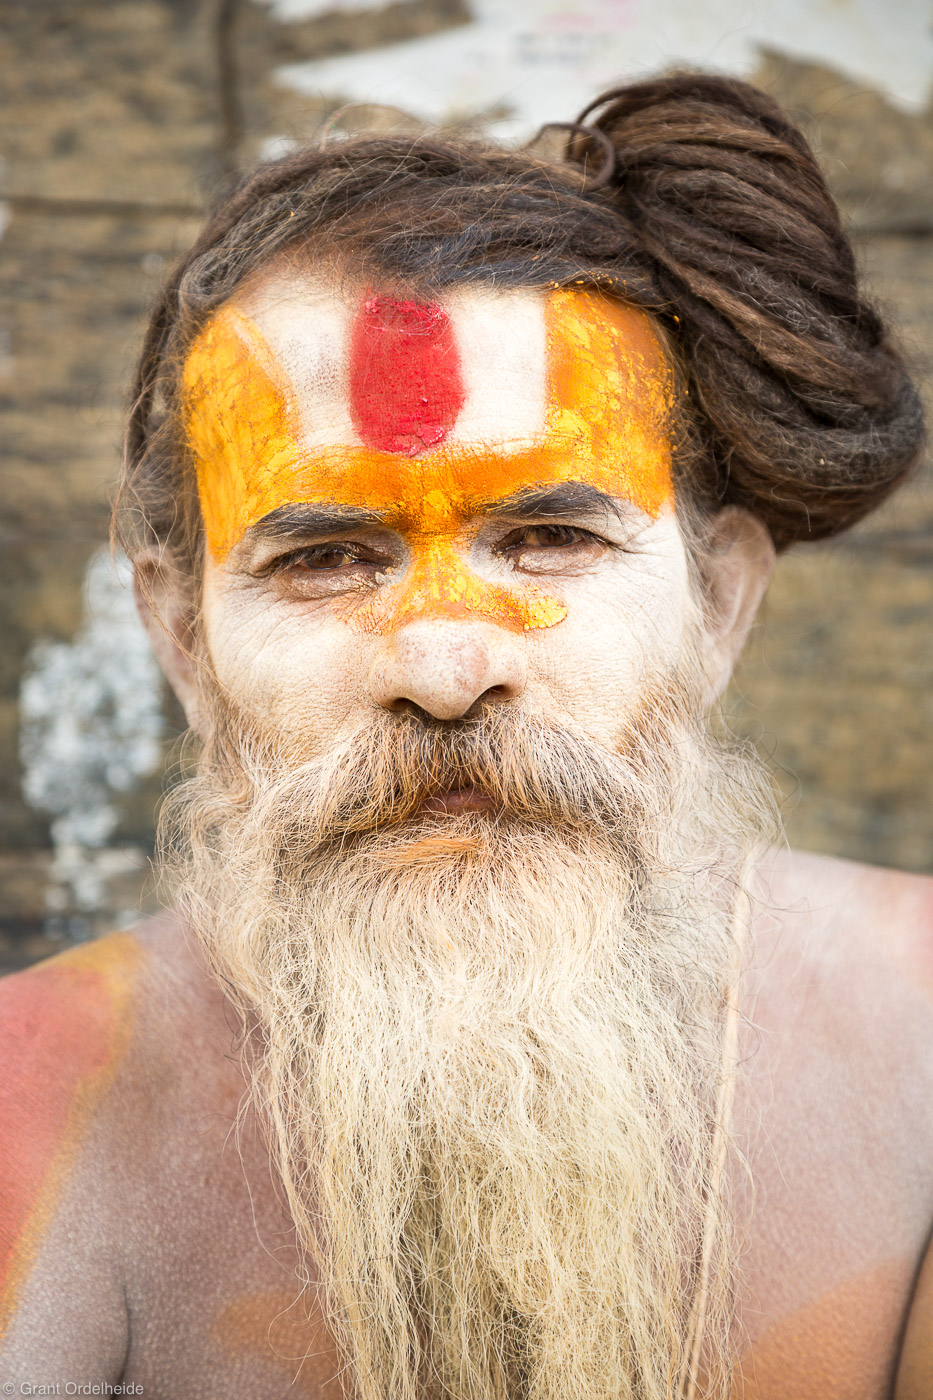 katmandu, sadu, nepal, holy man, portrait, hindu, temple, pashupatinath, photo